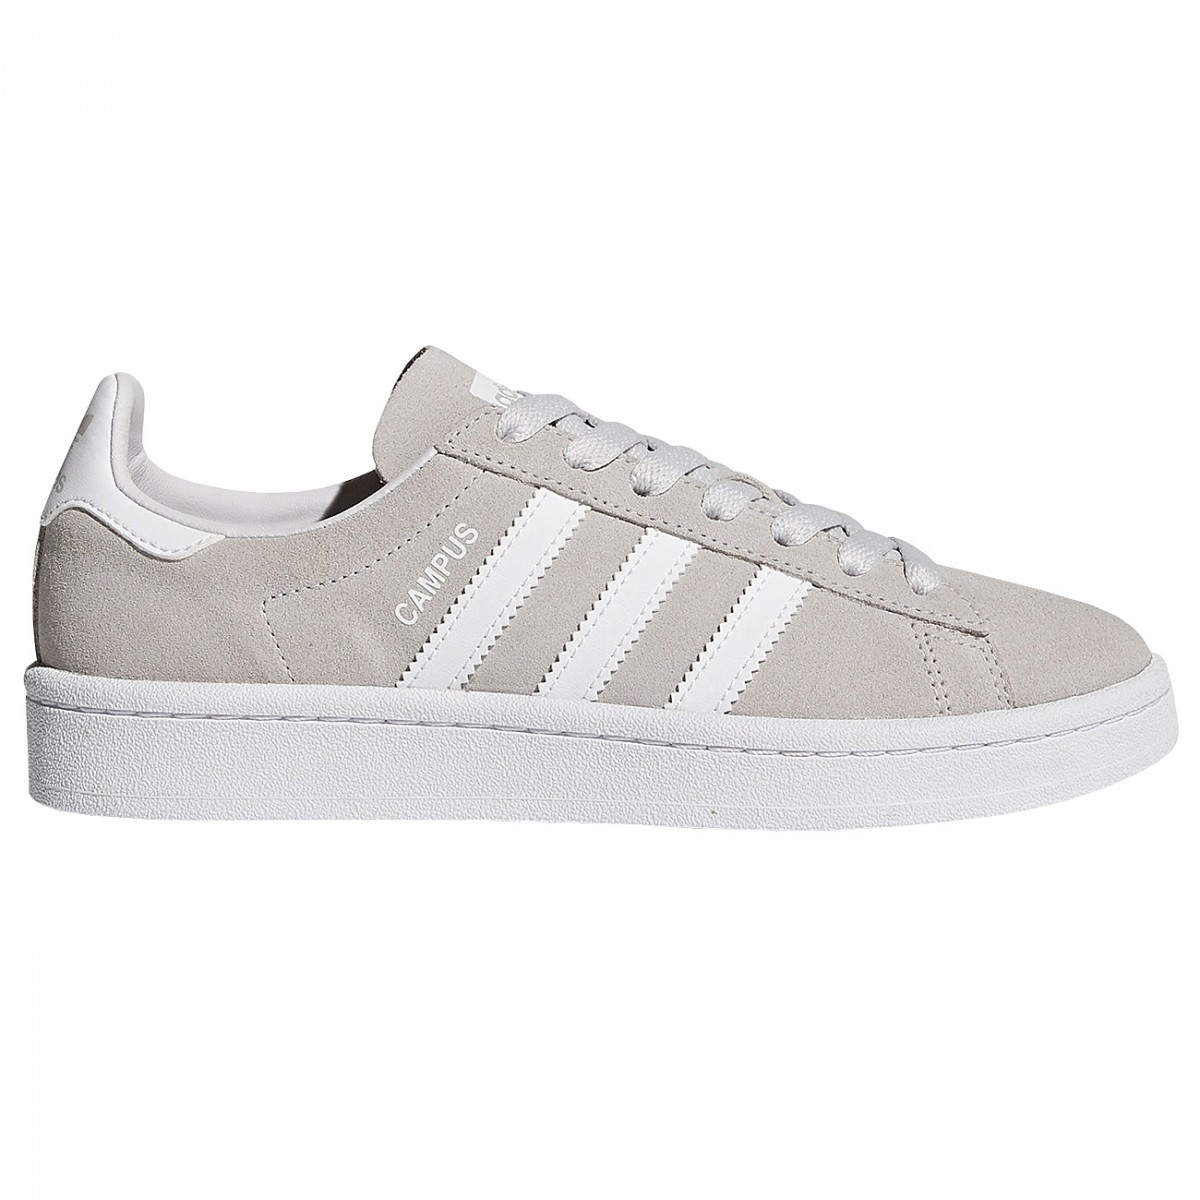 sneakers adidas campus gar on chaussures mode. Black Bedroom Furniture Sets. Home Design Ideas